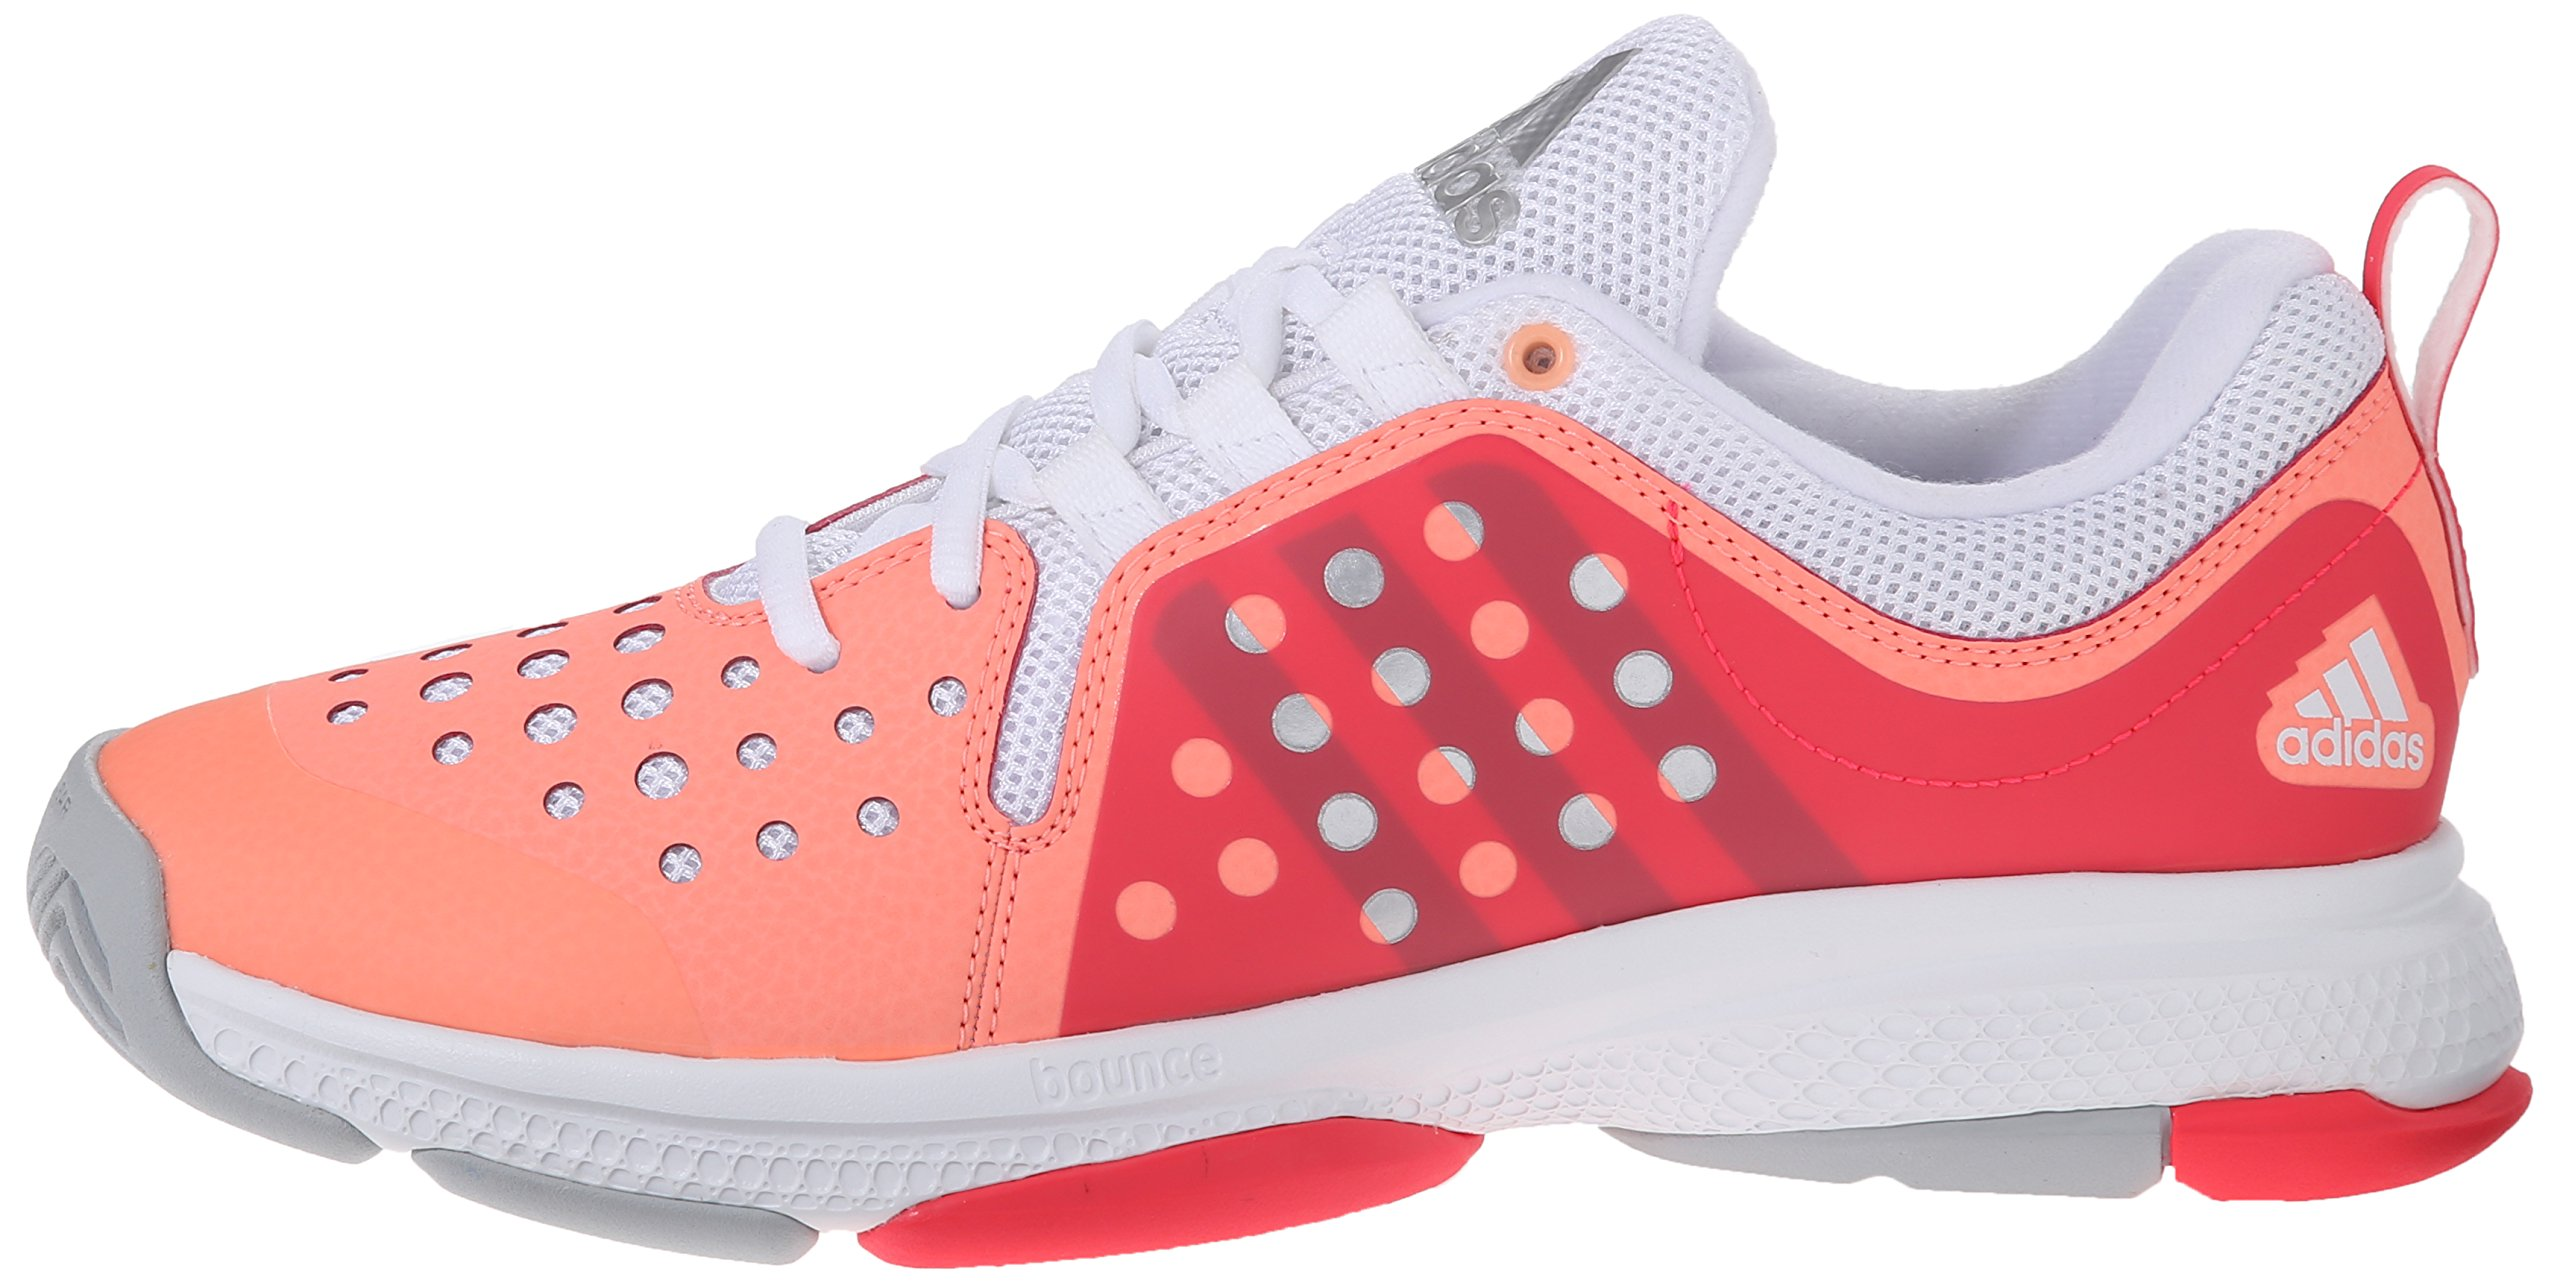 adidas Performance Women's Barricade Classic Bounce W Training Footwear,Sun Glow Yellow/Metallic Silver/Shock Red,9.5 M US by adidas (Image #5)